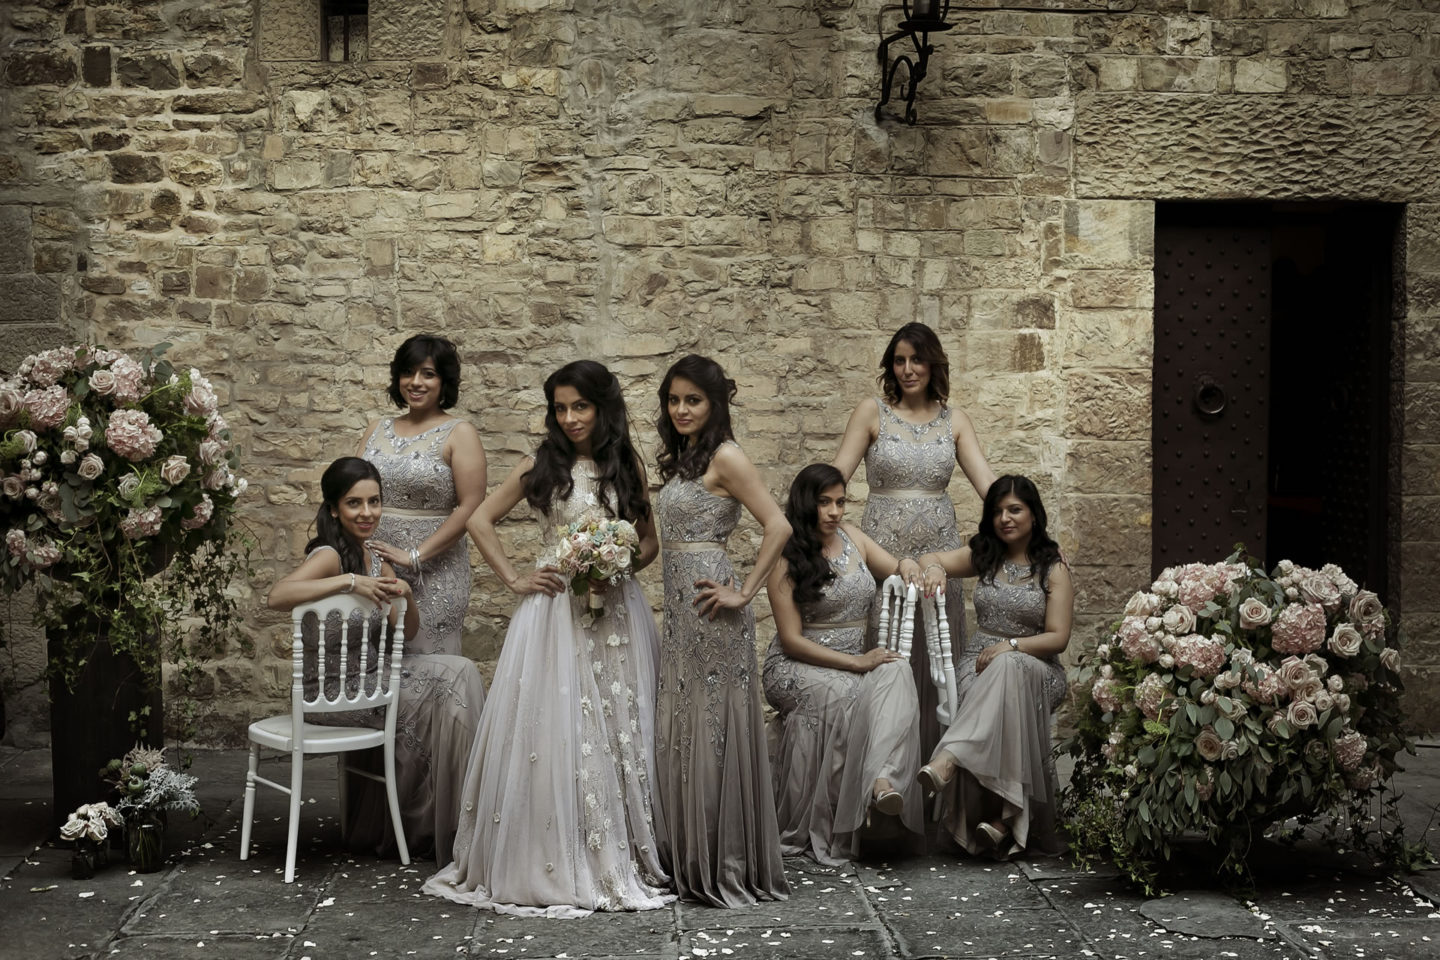 Bridal Party :: Groups Bridal Parties :: David Bastianoni wedding photographer